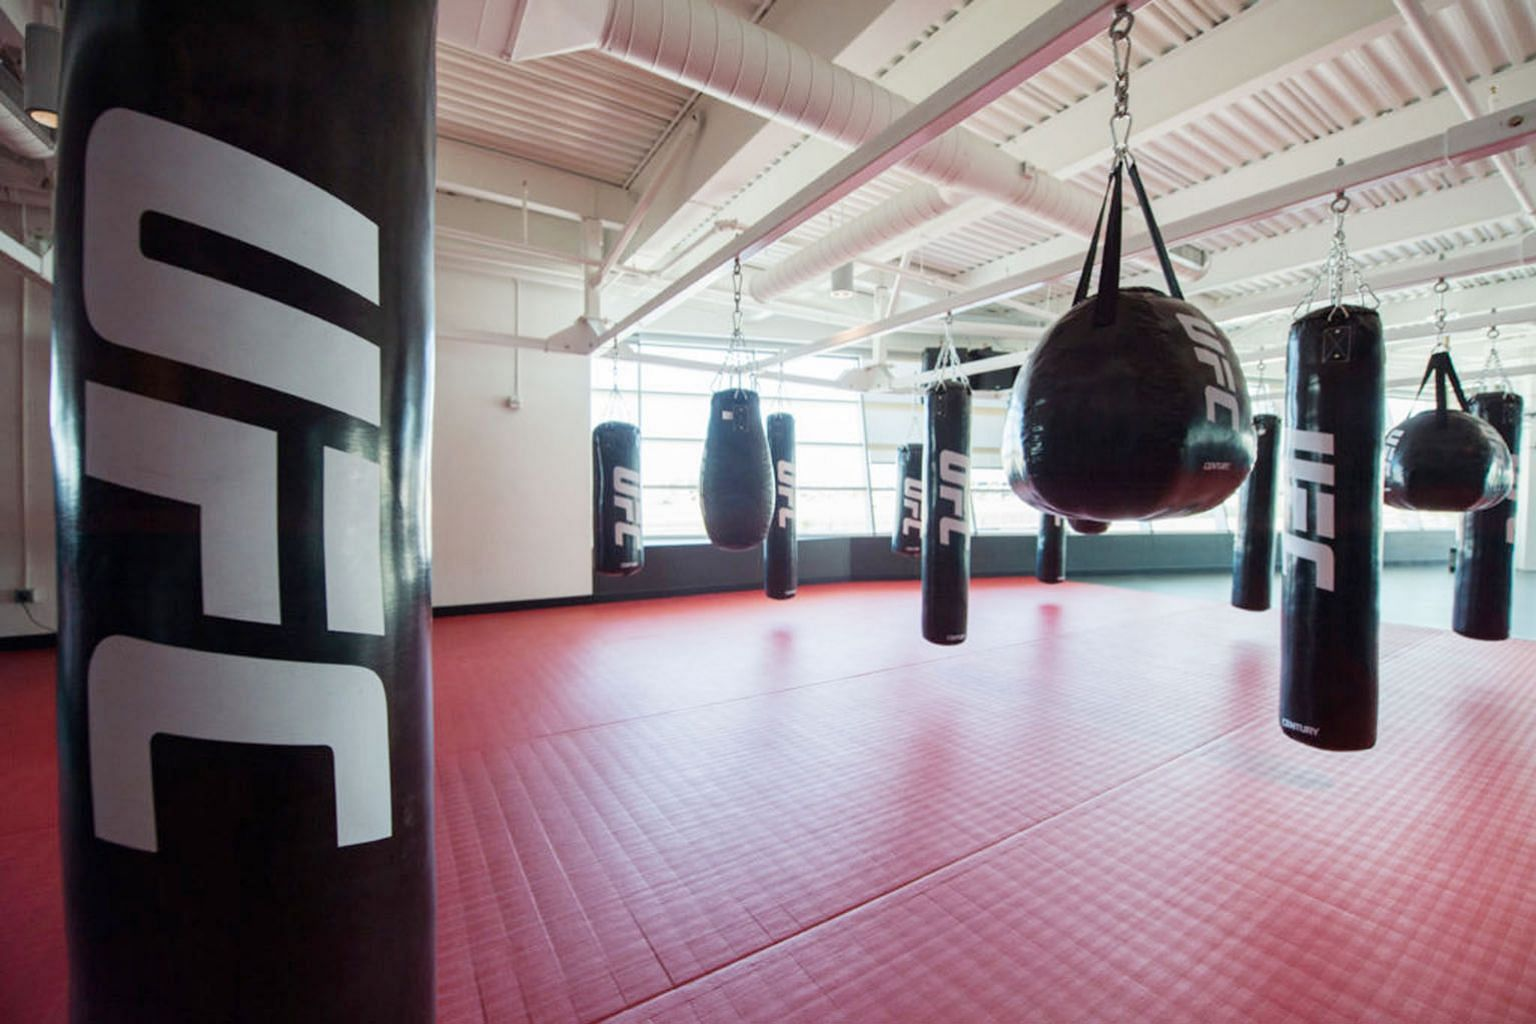 From top: The striking area at the UFC Performance Institute in Las Vegas, with punching bags in varying sizes. The strength and conditioning zone has bilateral force plates built in the ground to measure athletes' explosiveness and peak strength. Th